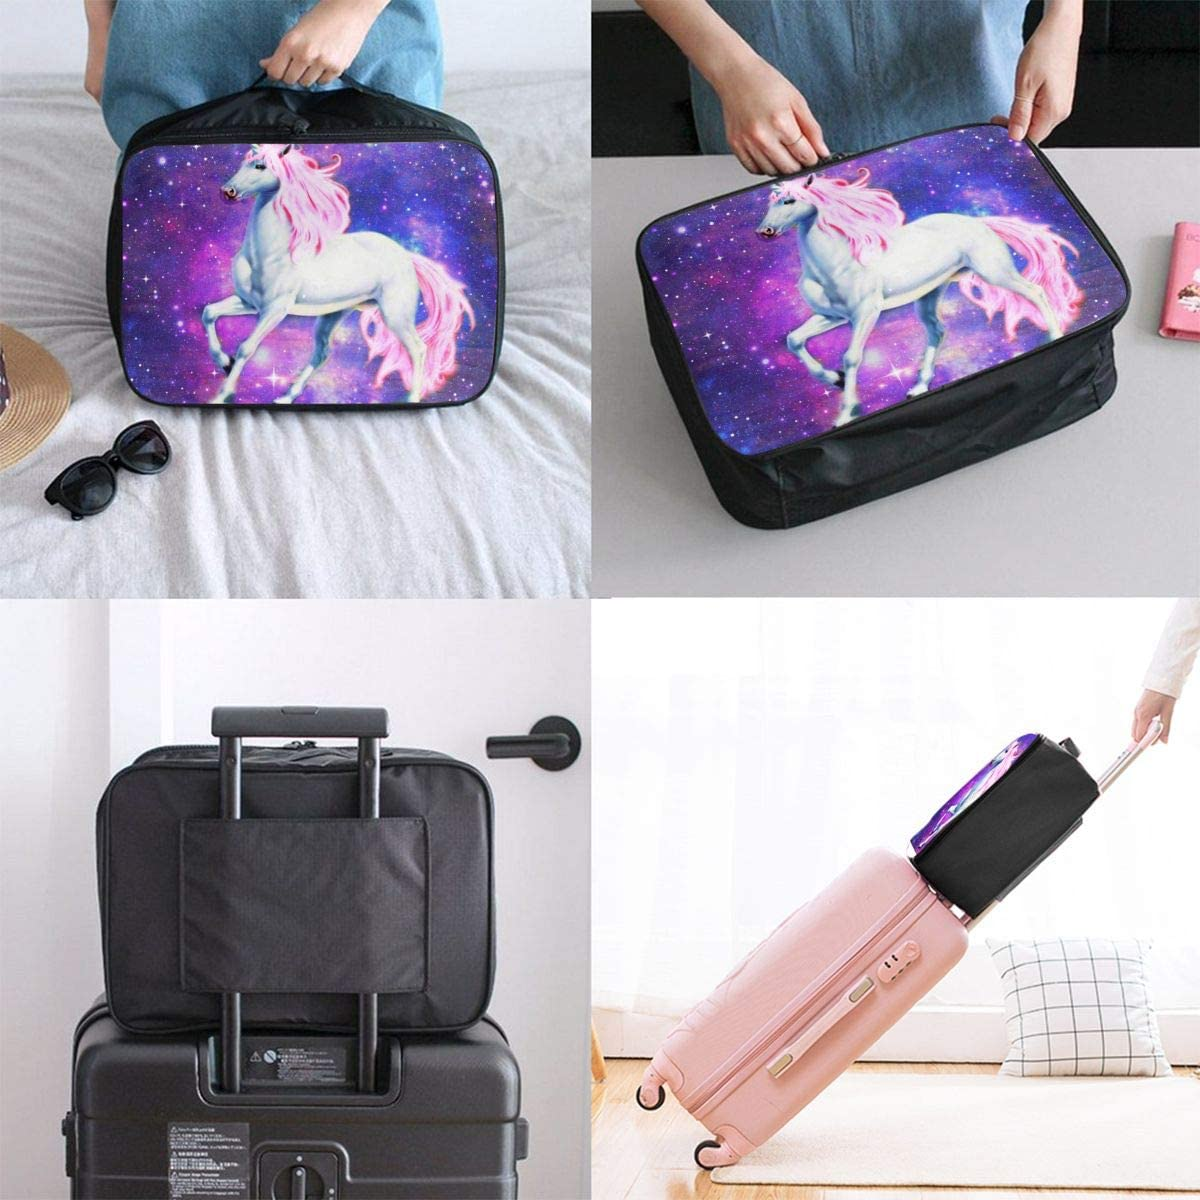 Starry Unicorn Travel Carry-on Luggage Weekender Bag Overnight Tote Flight Duffel In Trolley Handle